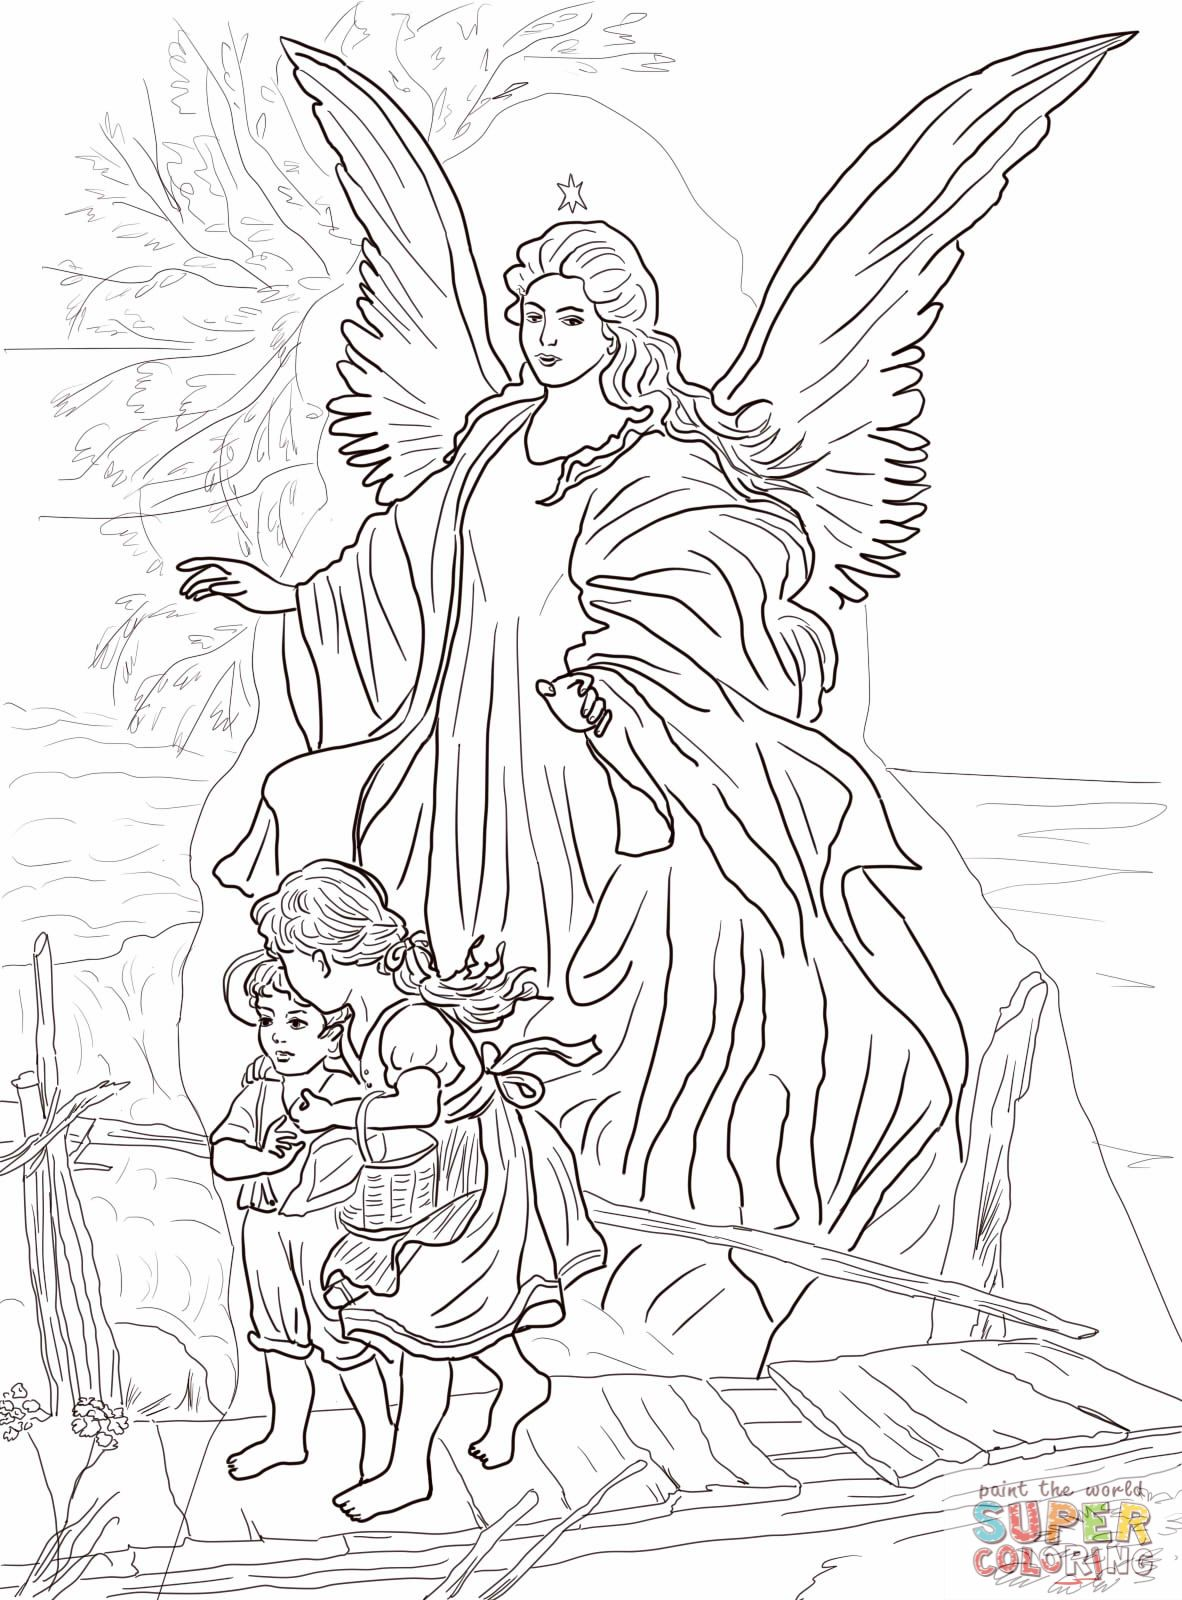 Guardian Angel Watching Over Children Grown Ups Like To Color Too